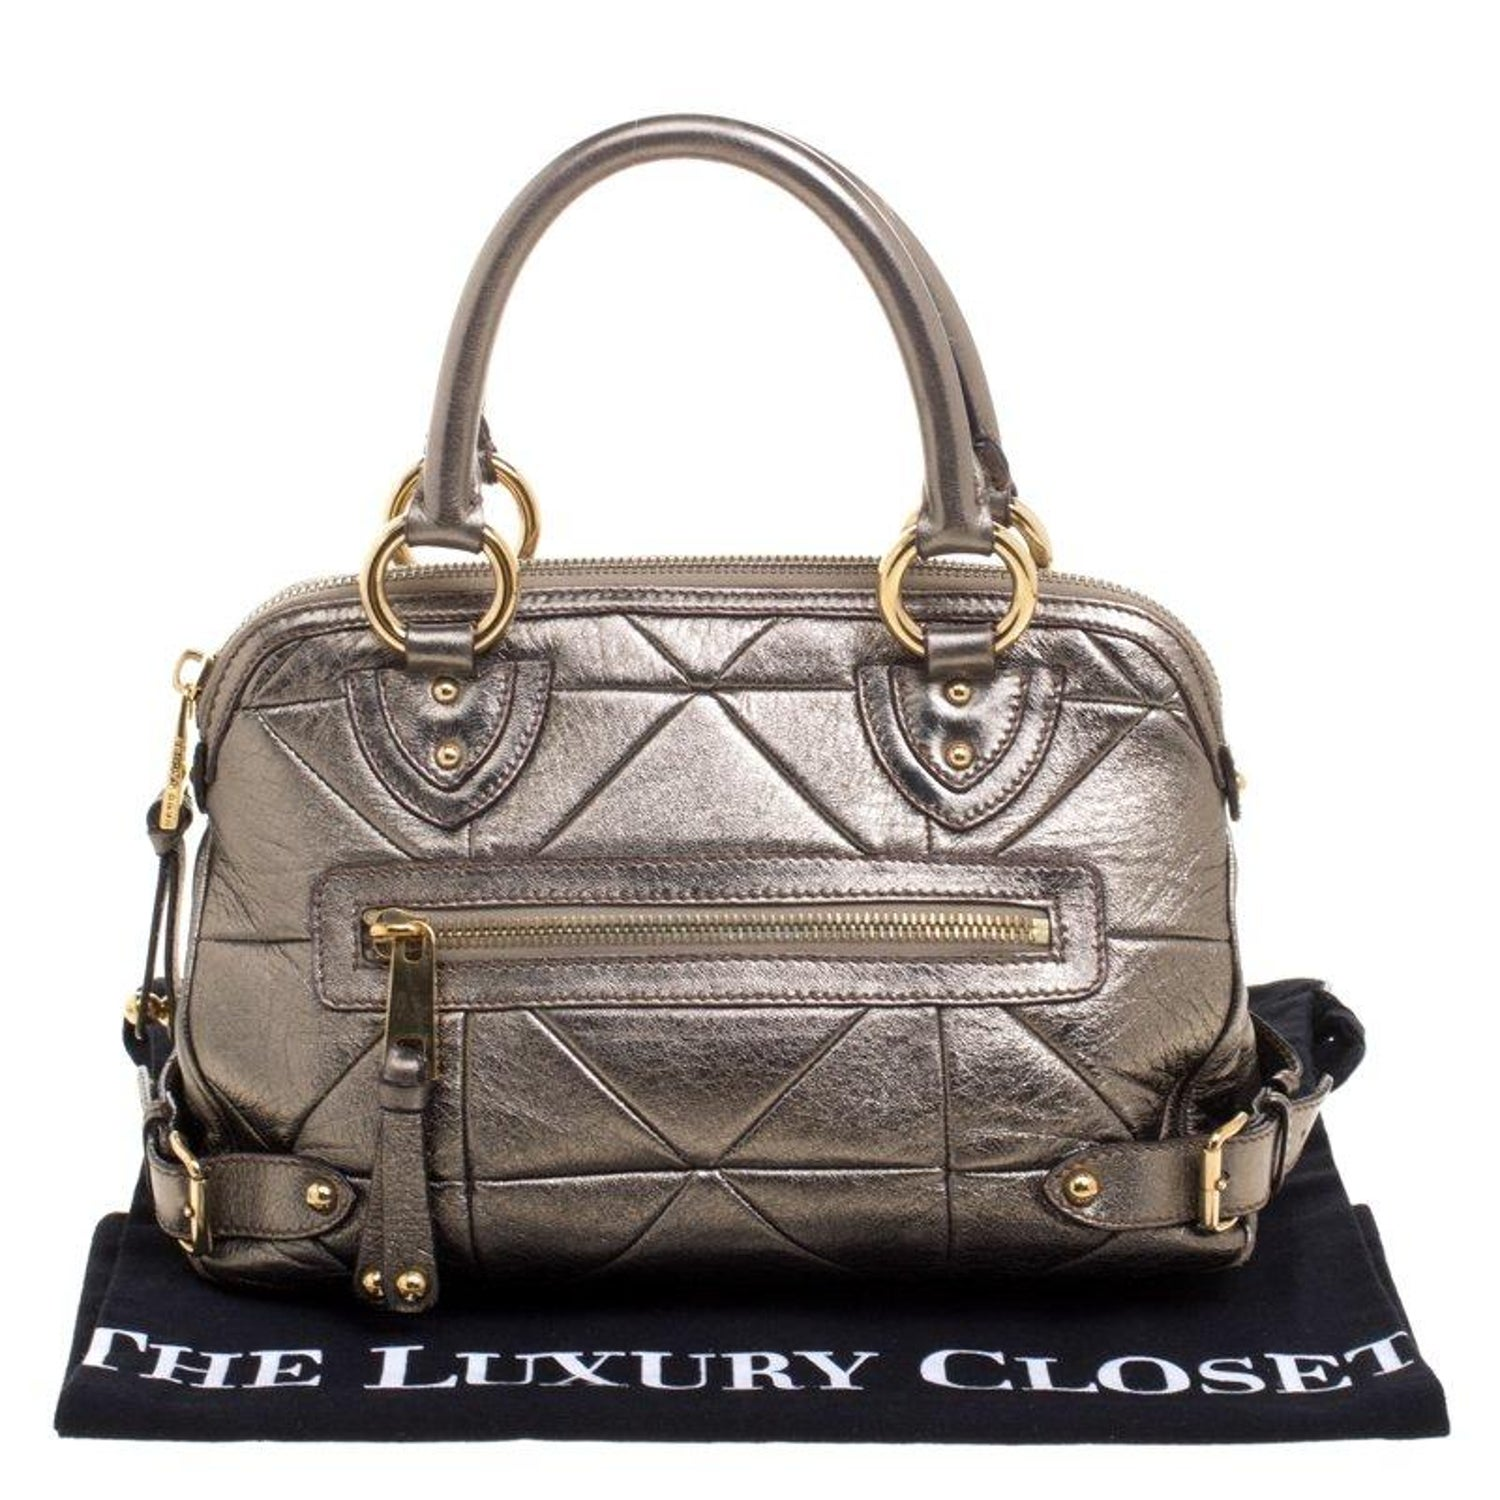 e2e59c4af264 Marc Jacobs Gold Quilted Leather Satchel For Sale at 1stdibs